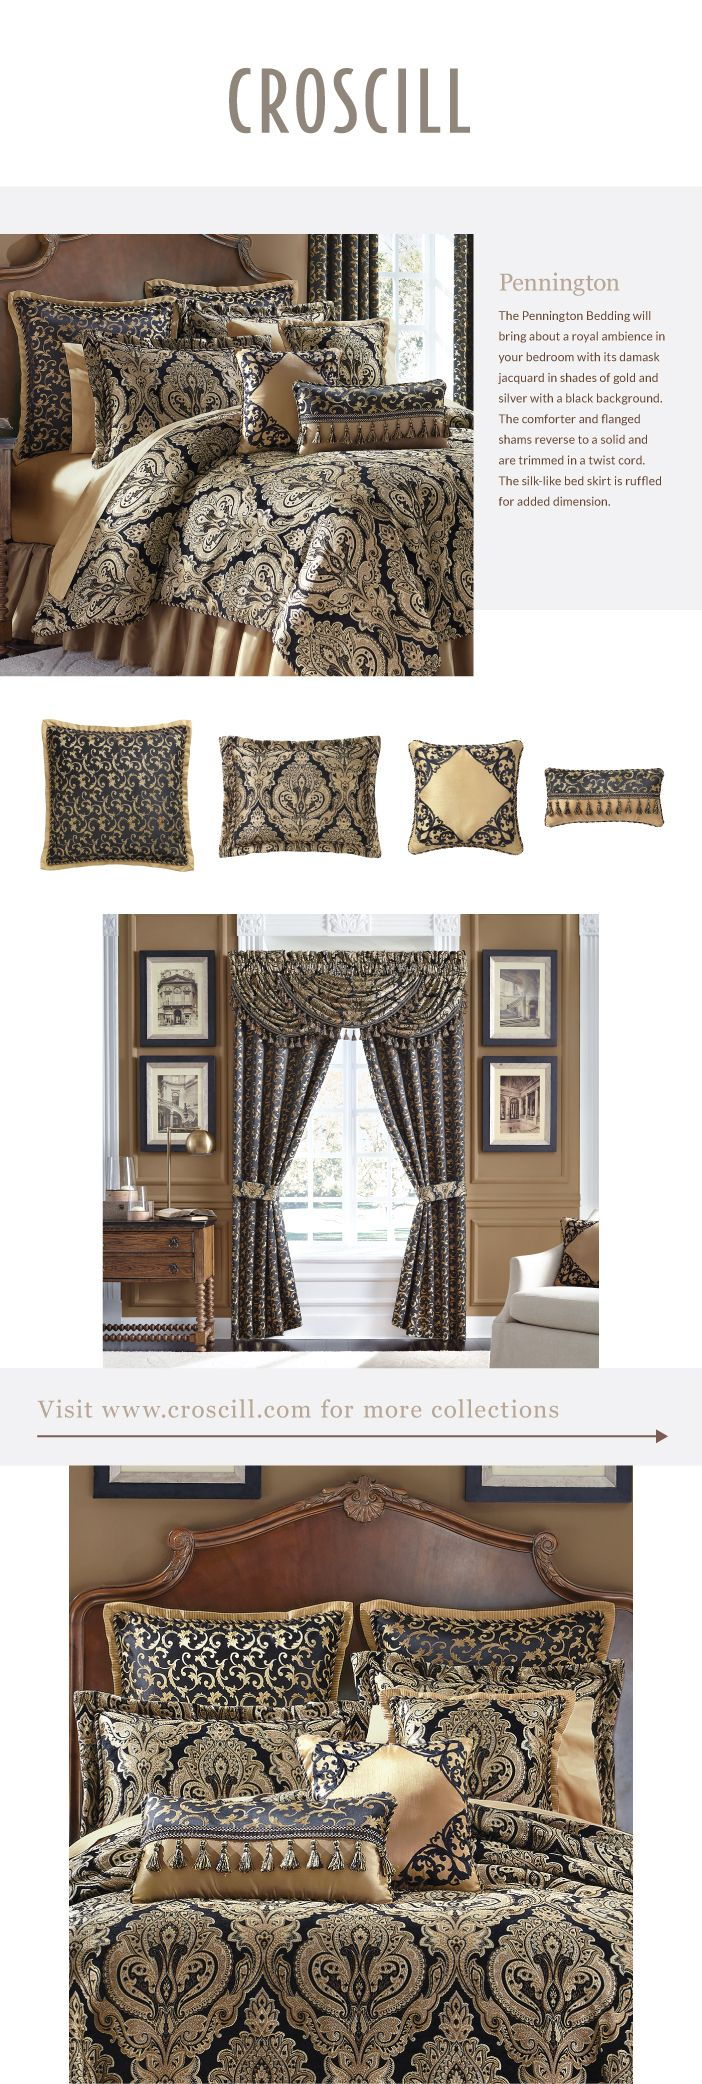 Bedding jardin collection bedding collections bed amp bath macy s - Pennington Bedding Collection Croscill